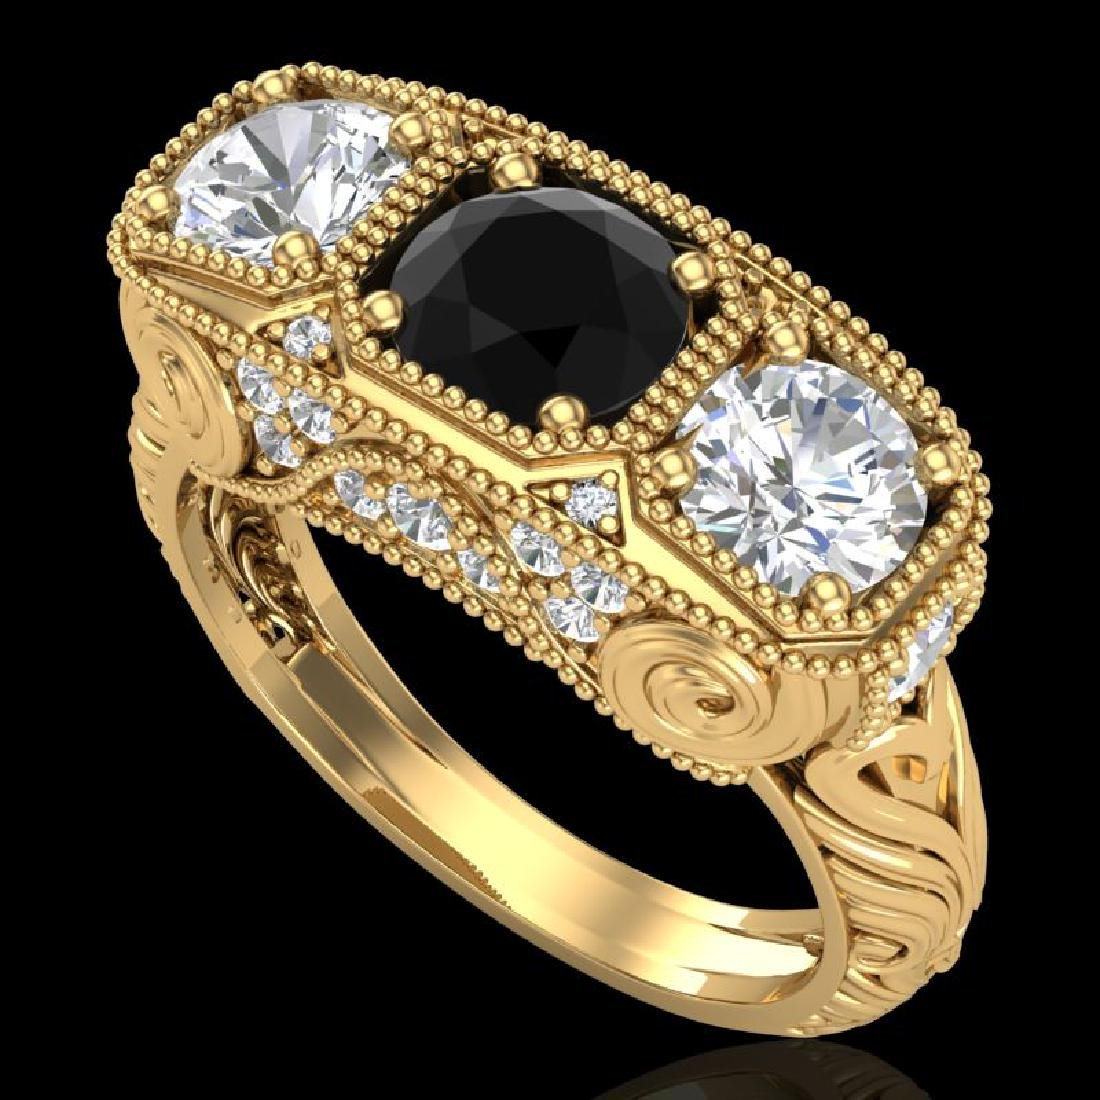 2.51 CTW Fancy Black Diamond Solitaire Art Deco 3 Stone